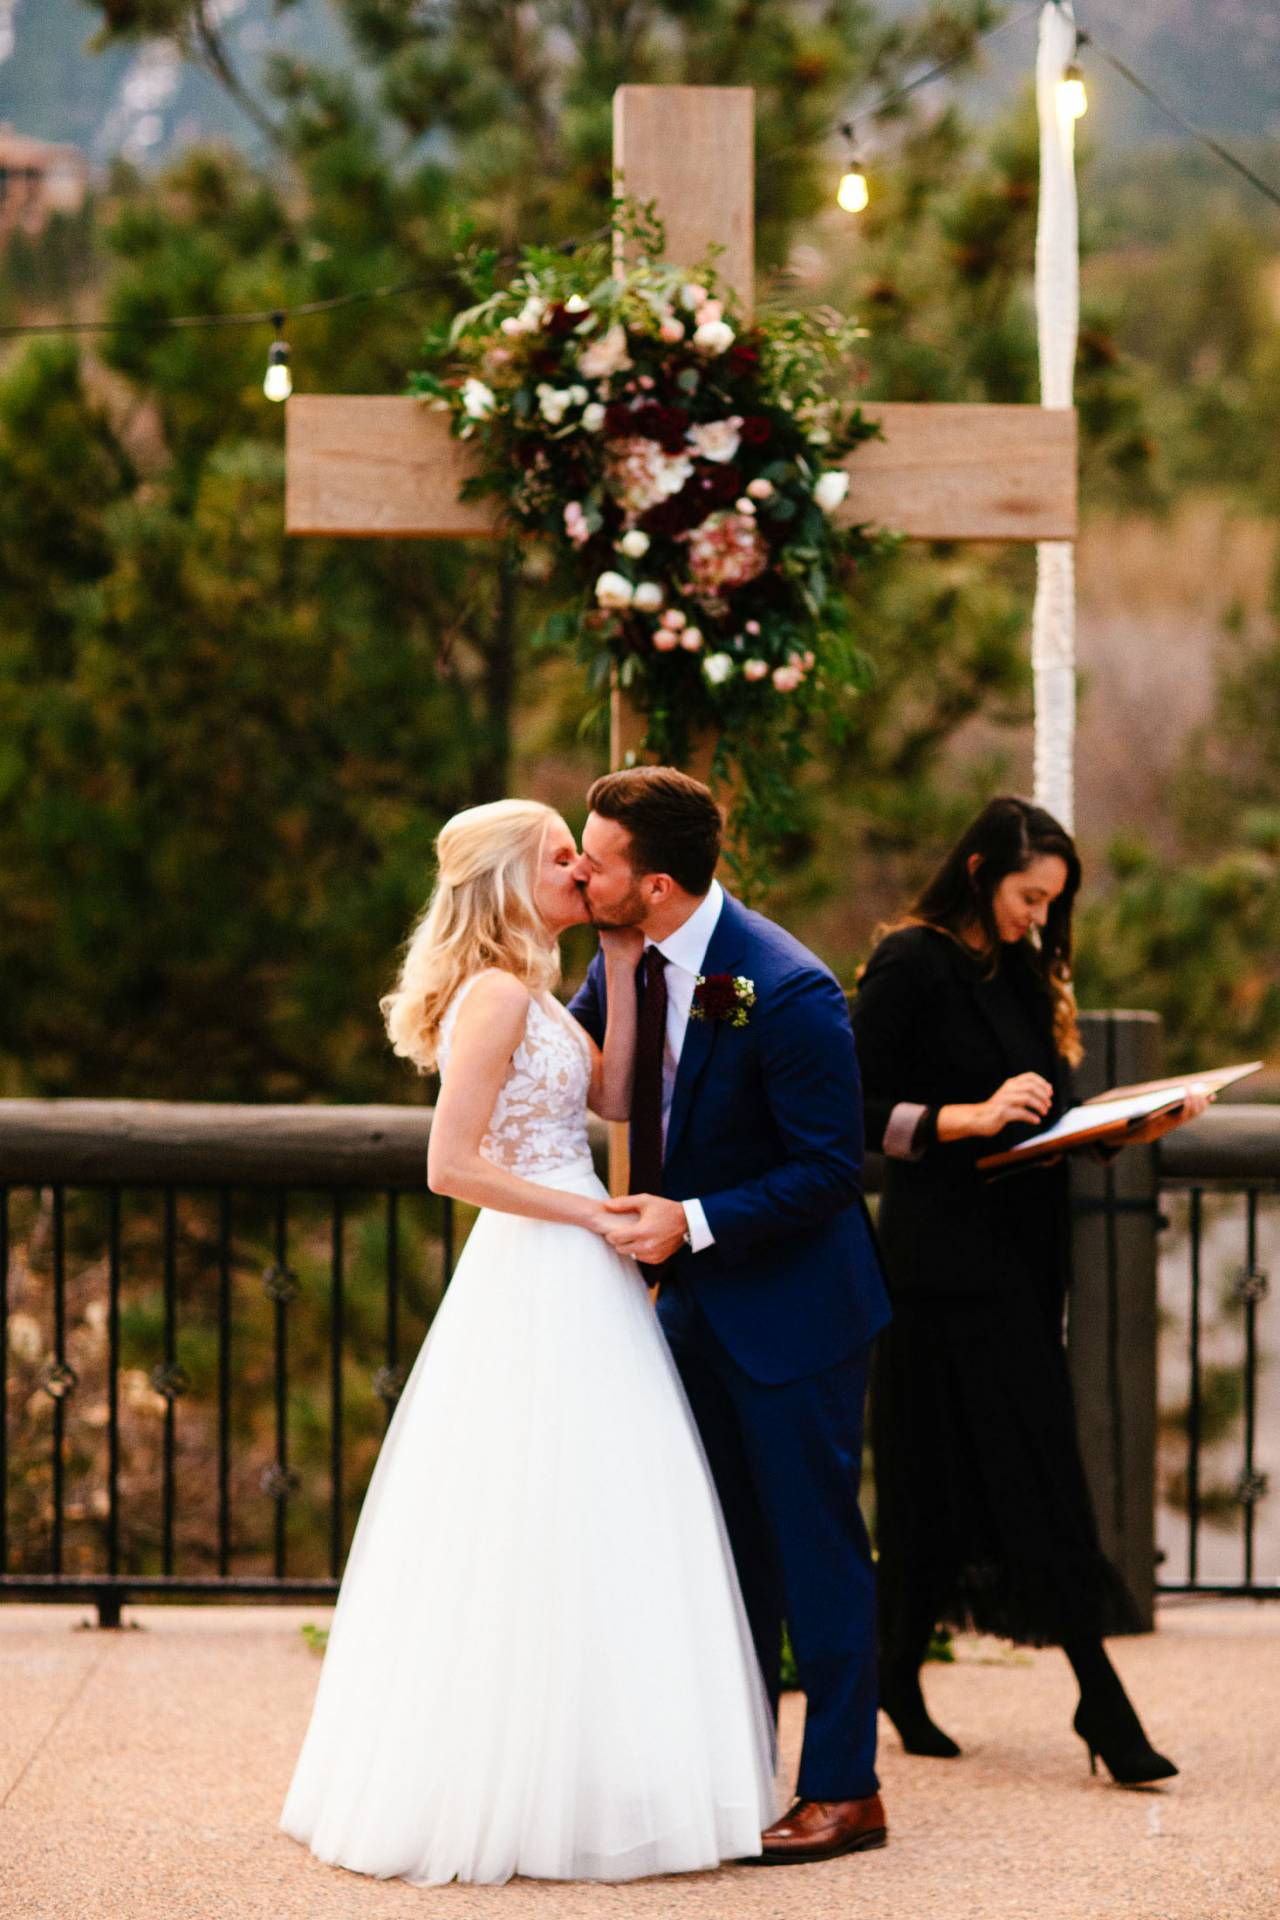 Bride and groom kiss at the altar with cross in the background during wedding ceremony at Cheyenne Lodge.